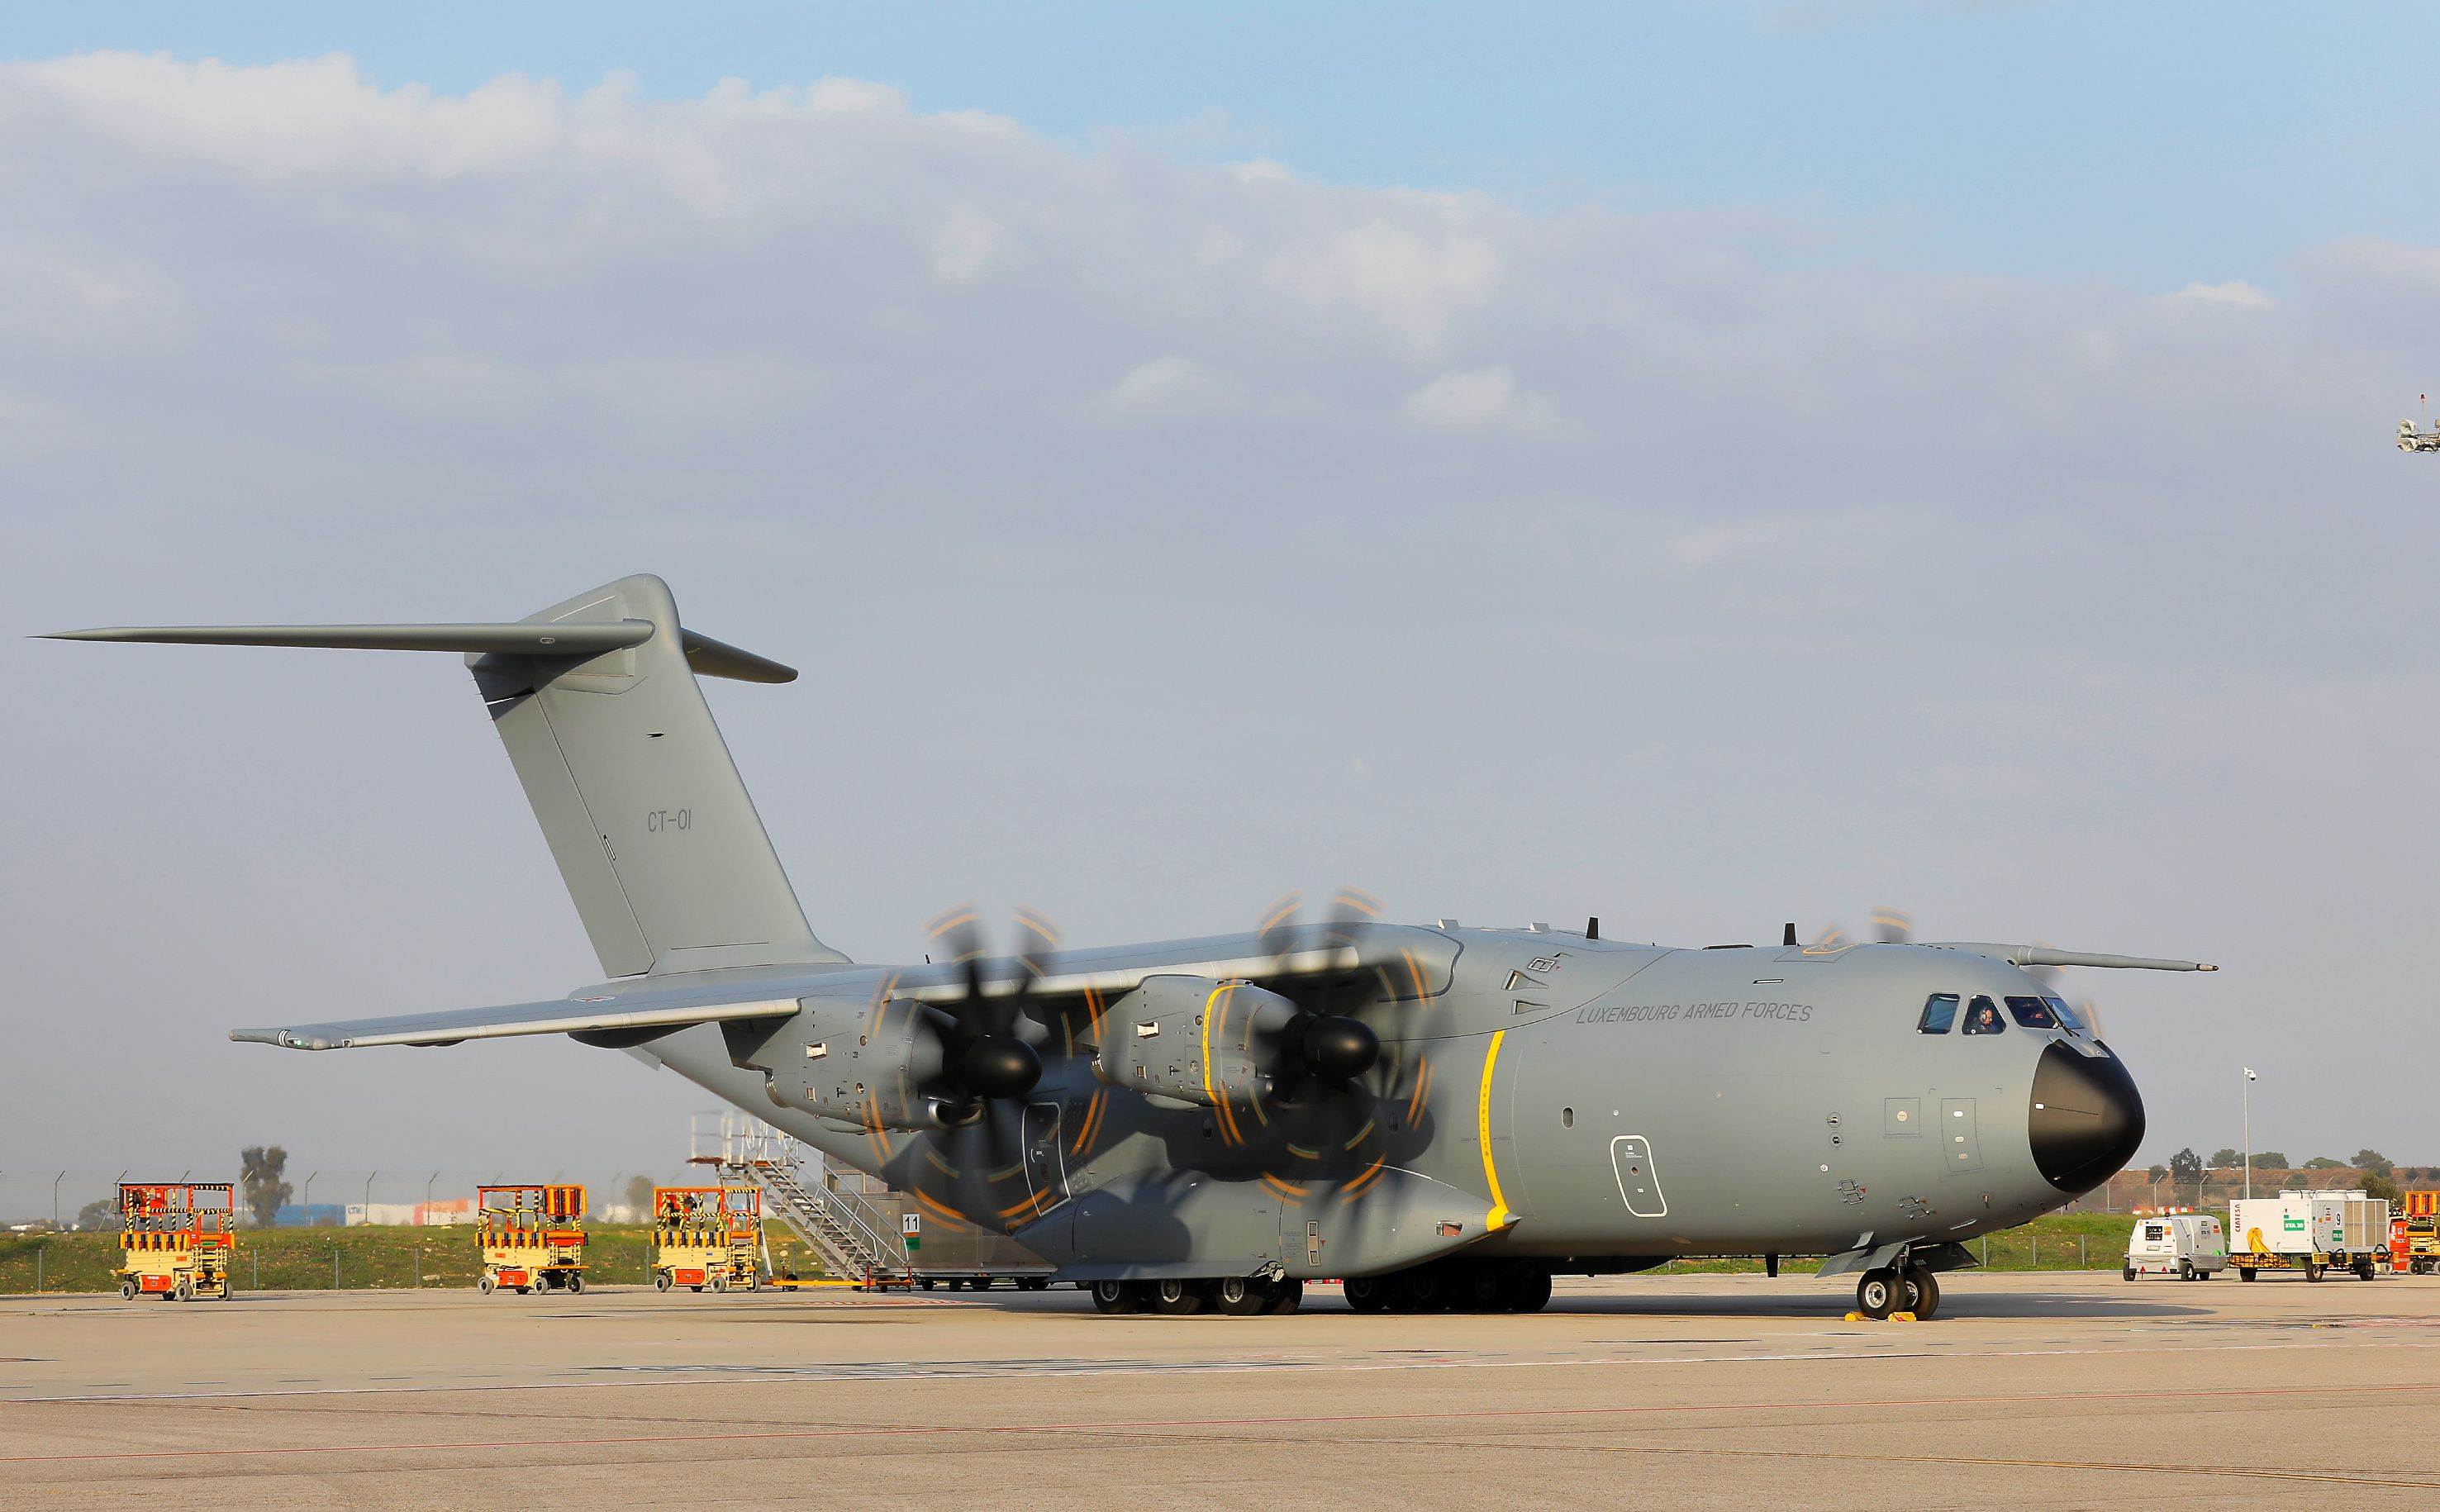 A400M - Defence - Airbus